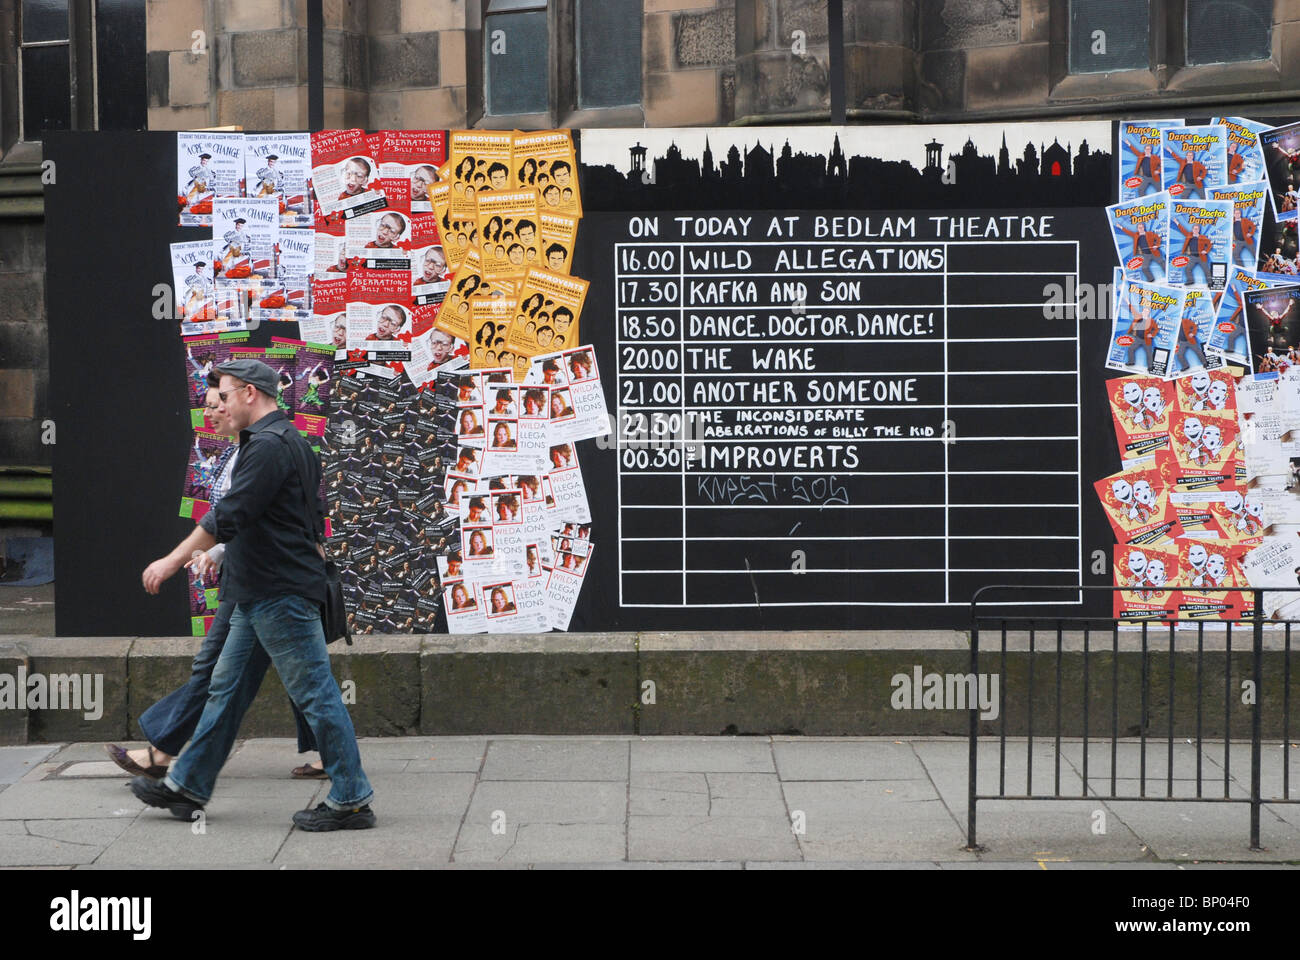 A couple walk by the blackboard outside the Bedlam Theatre during the annual Edinburgh Fringe Festival - Stock Image